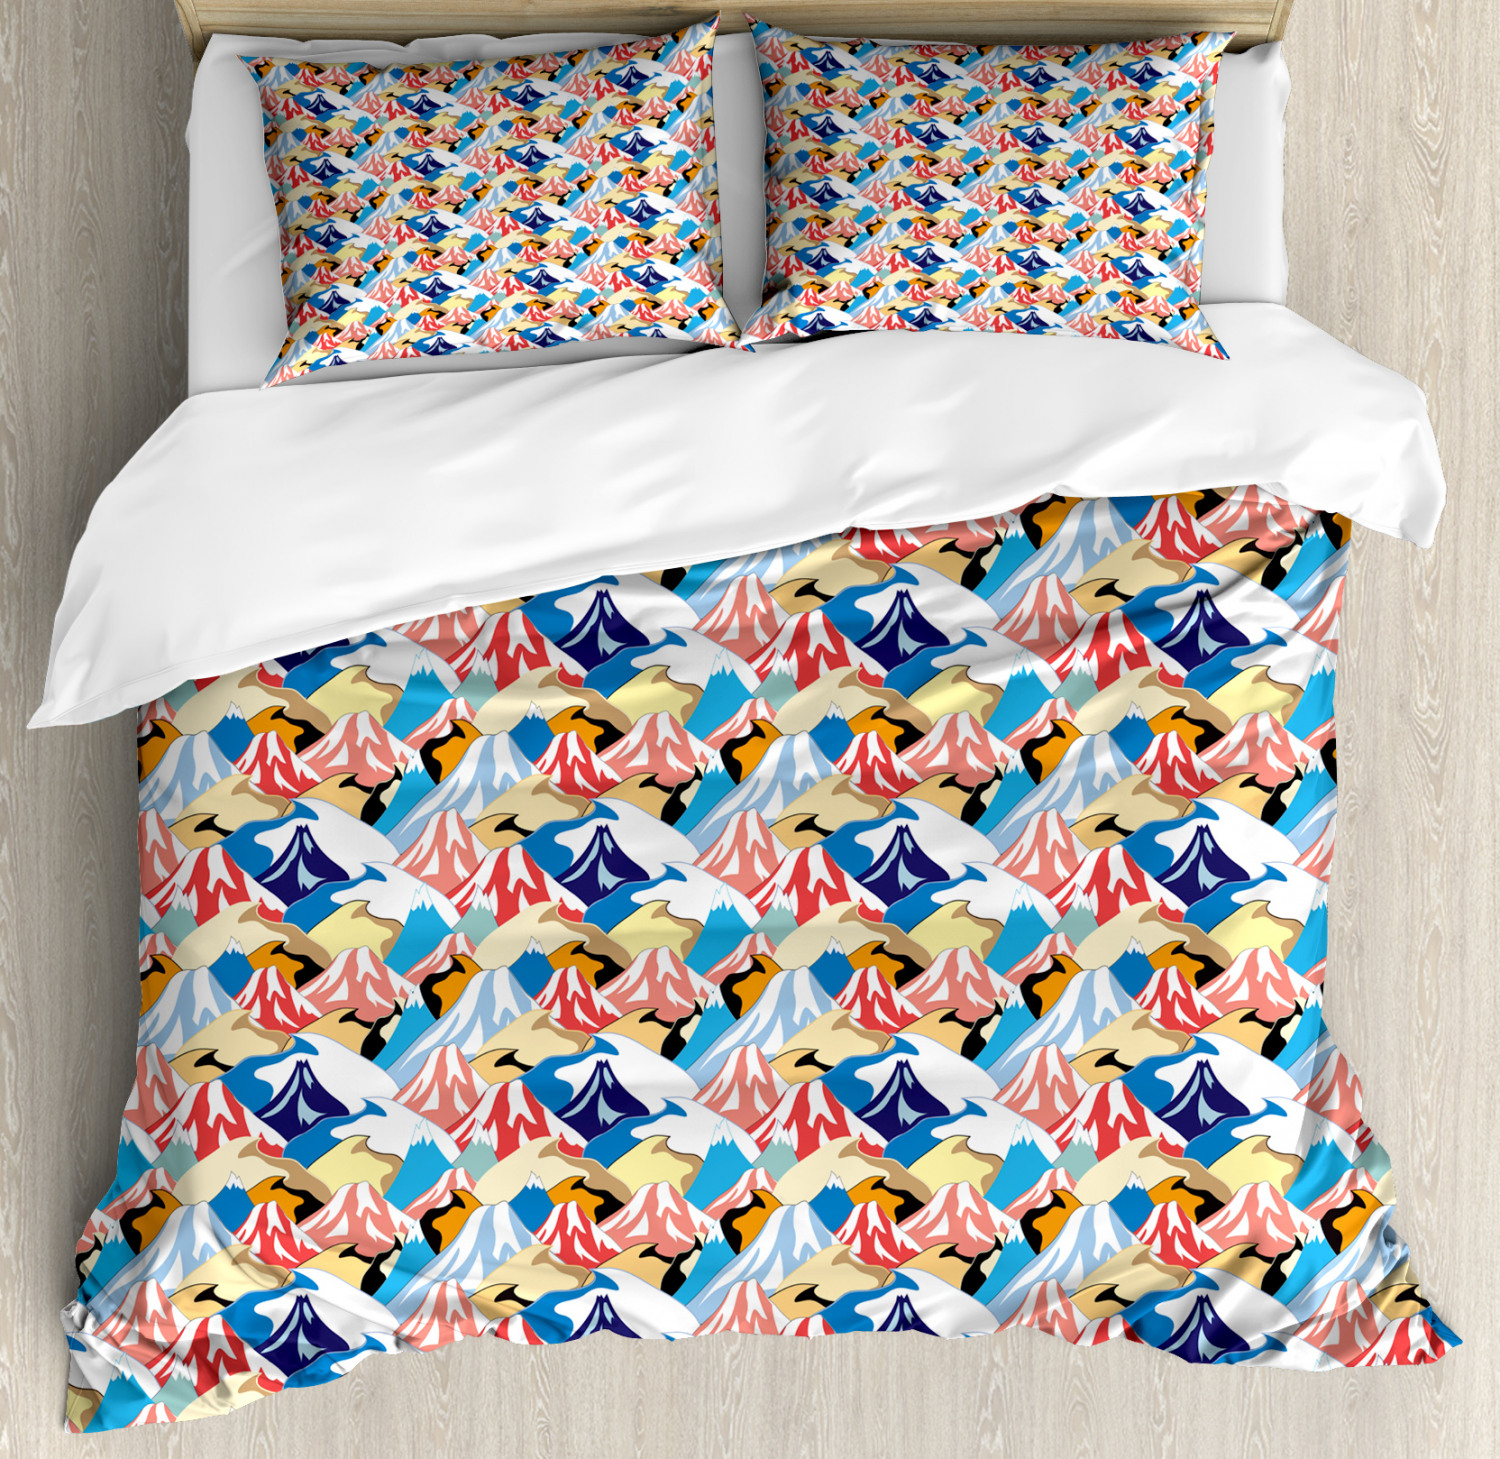 Mountain Duvet Cover Set, Cartoonish Style Adventure Nature Themed Pattern with Colorful ...